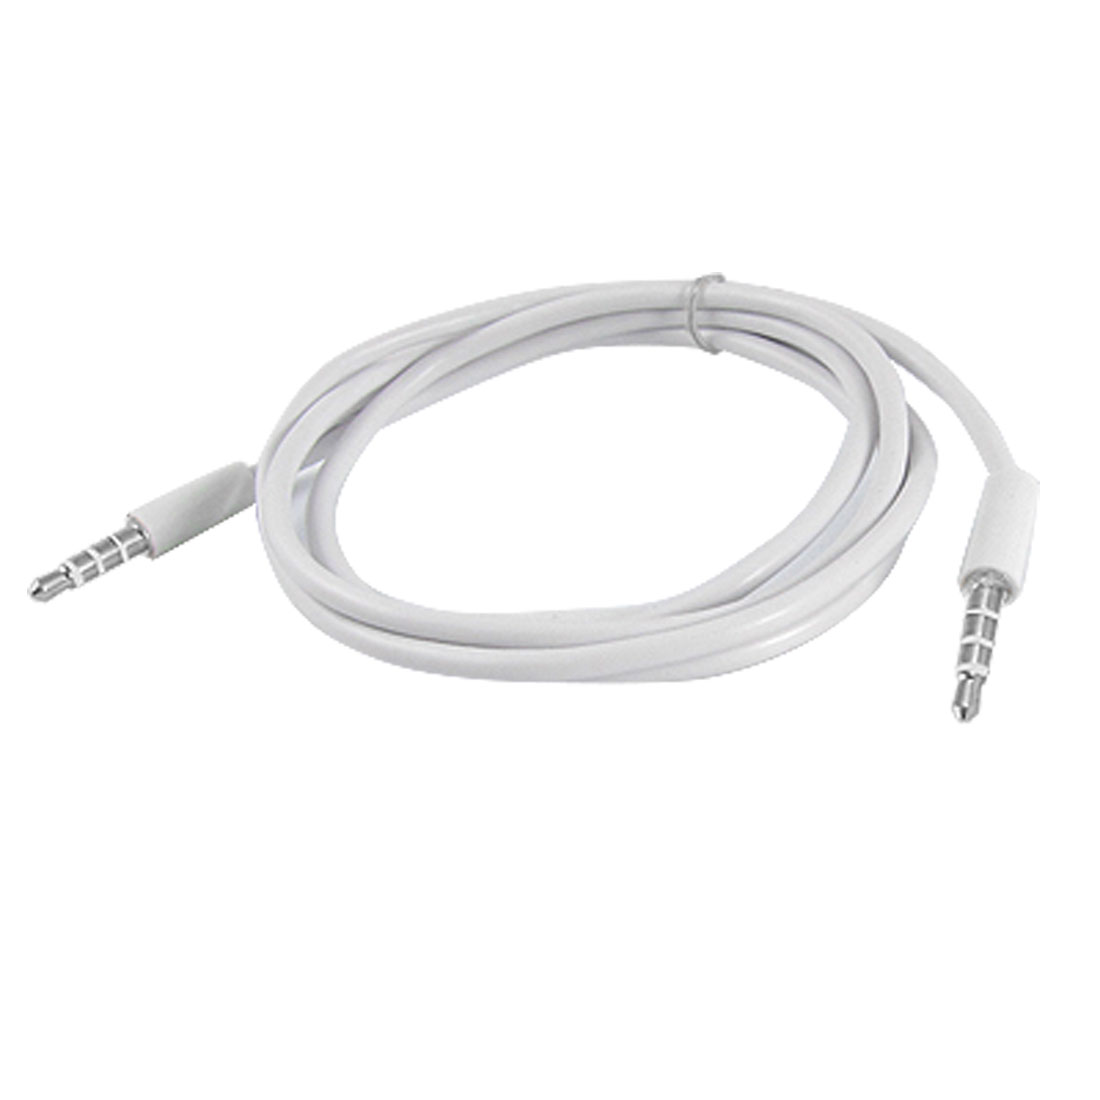 White 1M 3.5mm Connector Adapter Male to Male M/M Audio Extension Cable